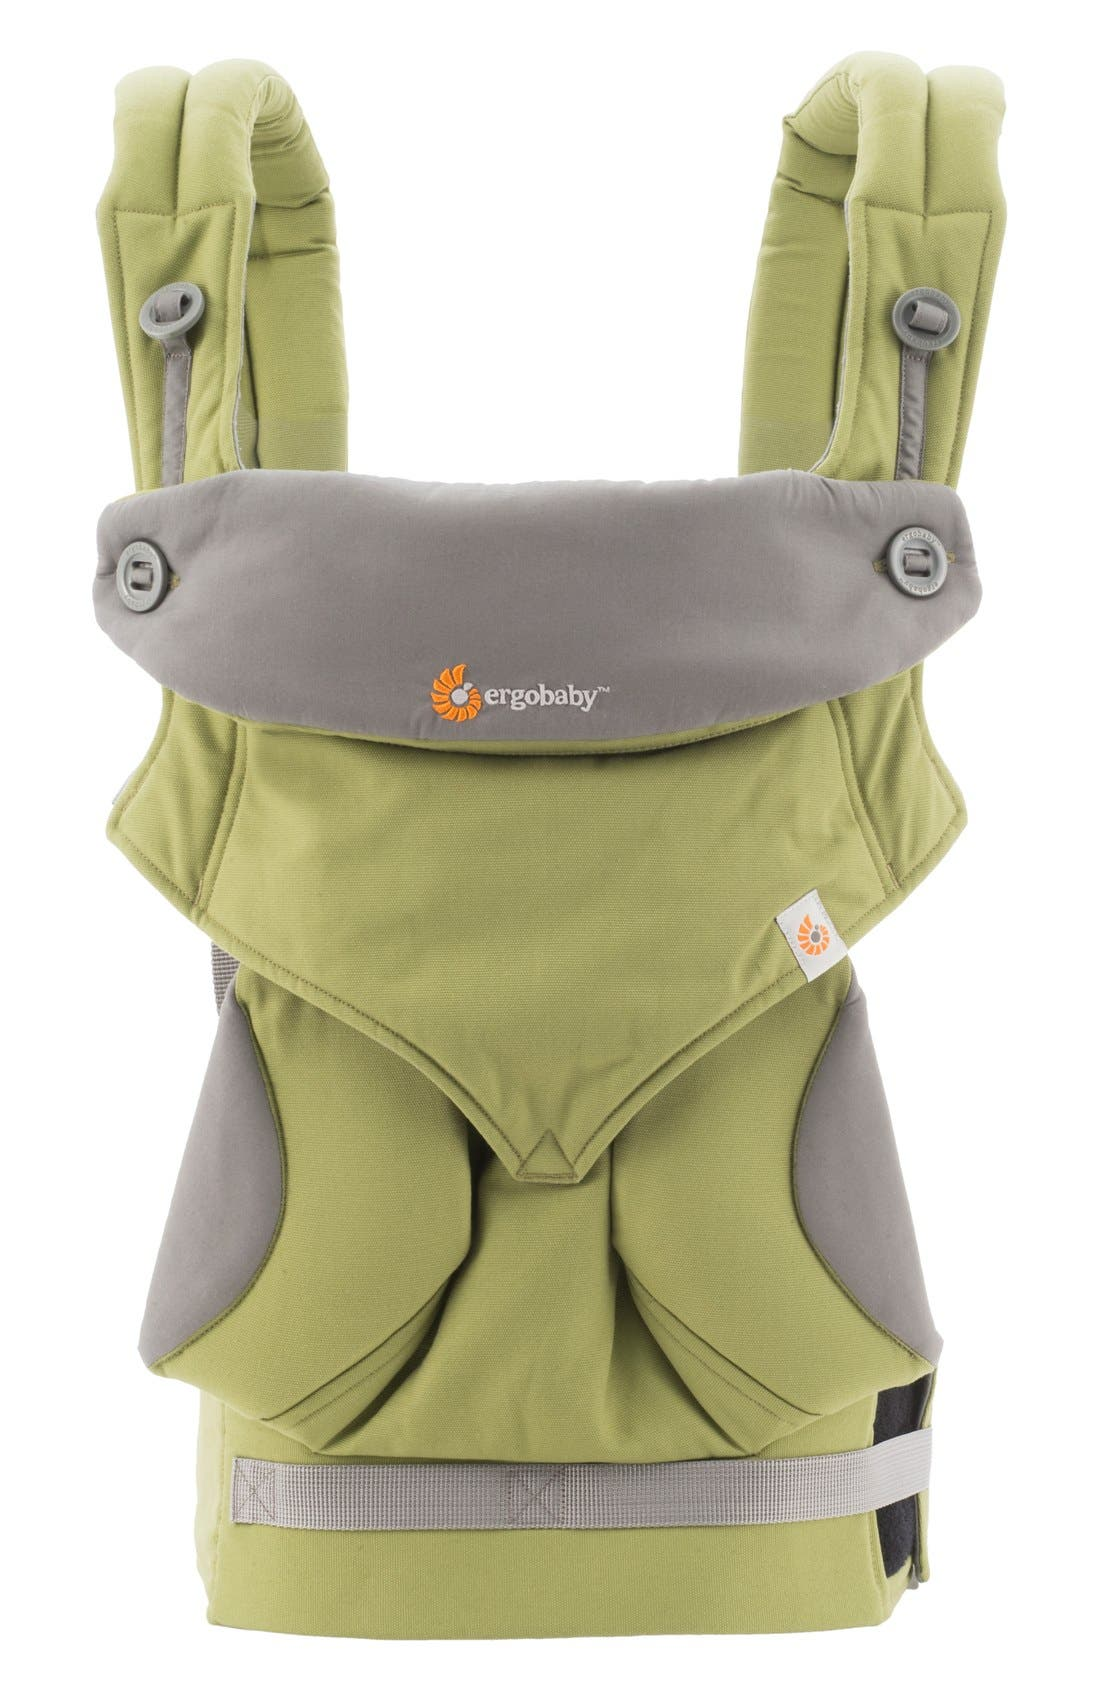 '360' Baby Carrier,                             Main thumbnail 1, color,                             Green